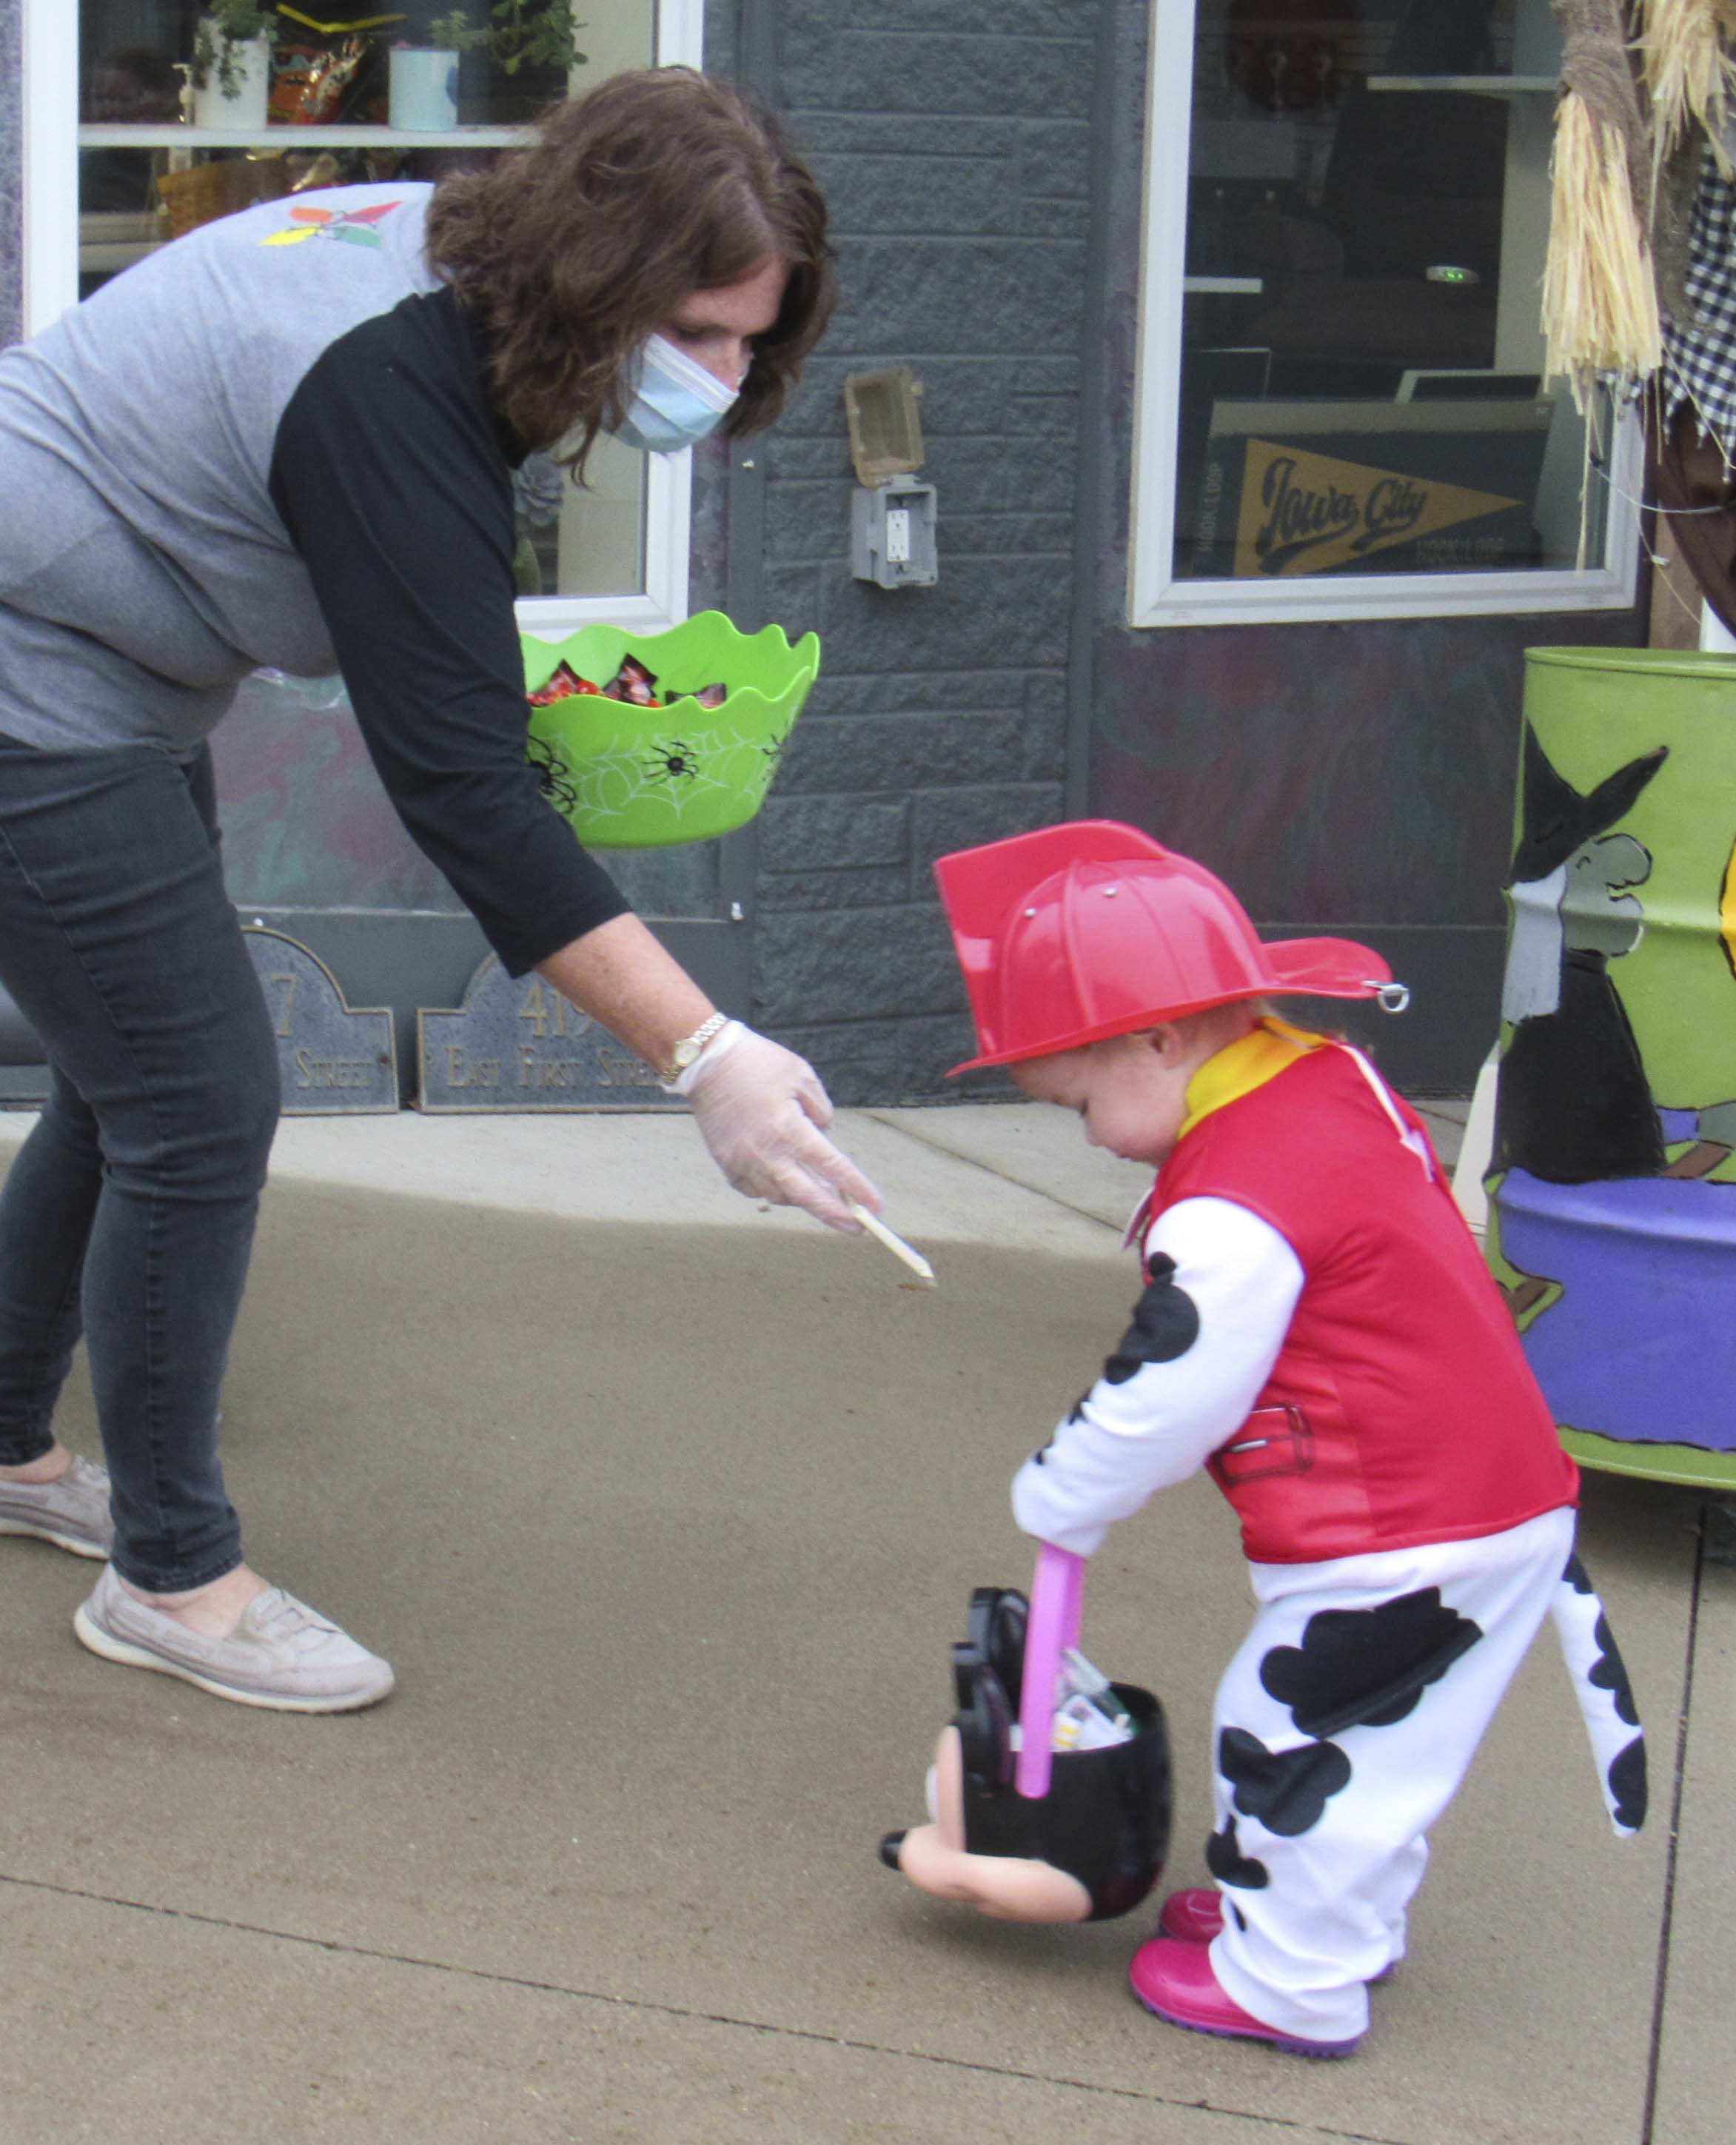 Terri Takes-Tallman, with Advantage Home Medical, hands out candy and hand sanitizer to Aubrey Houdek during Treats on the Streets.